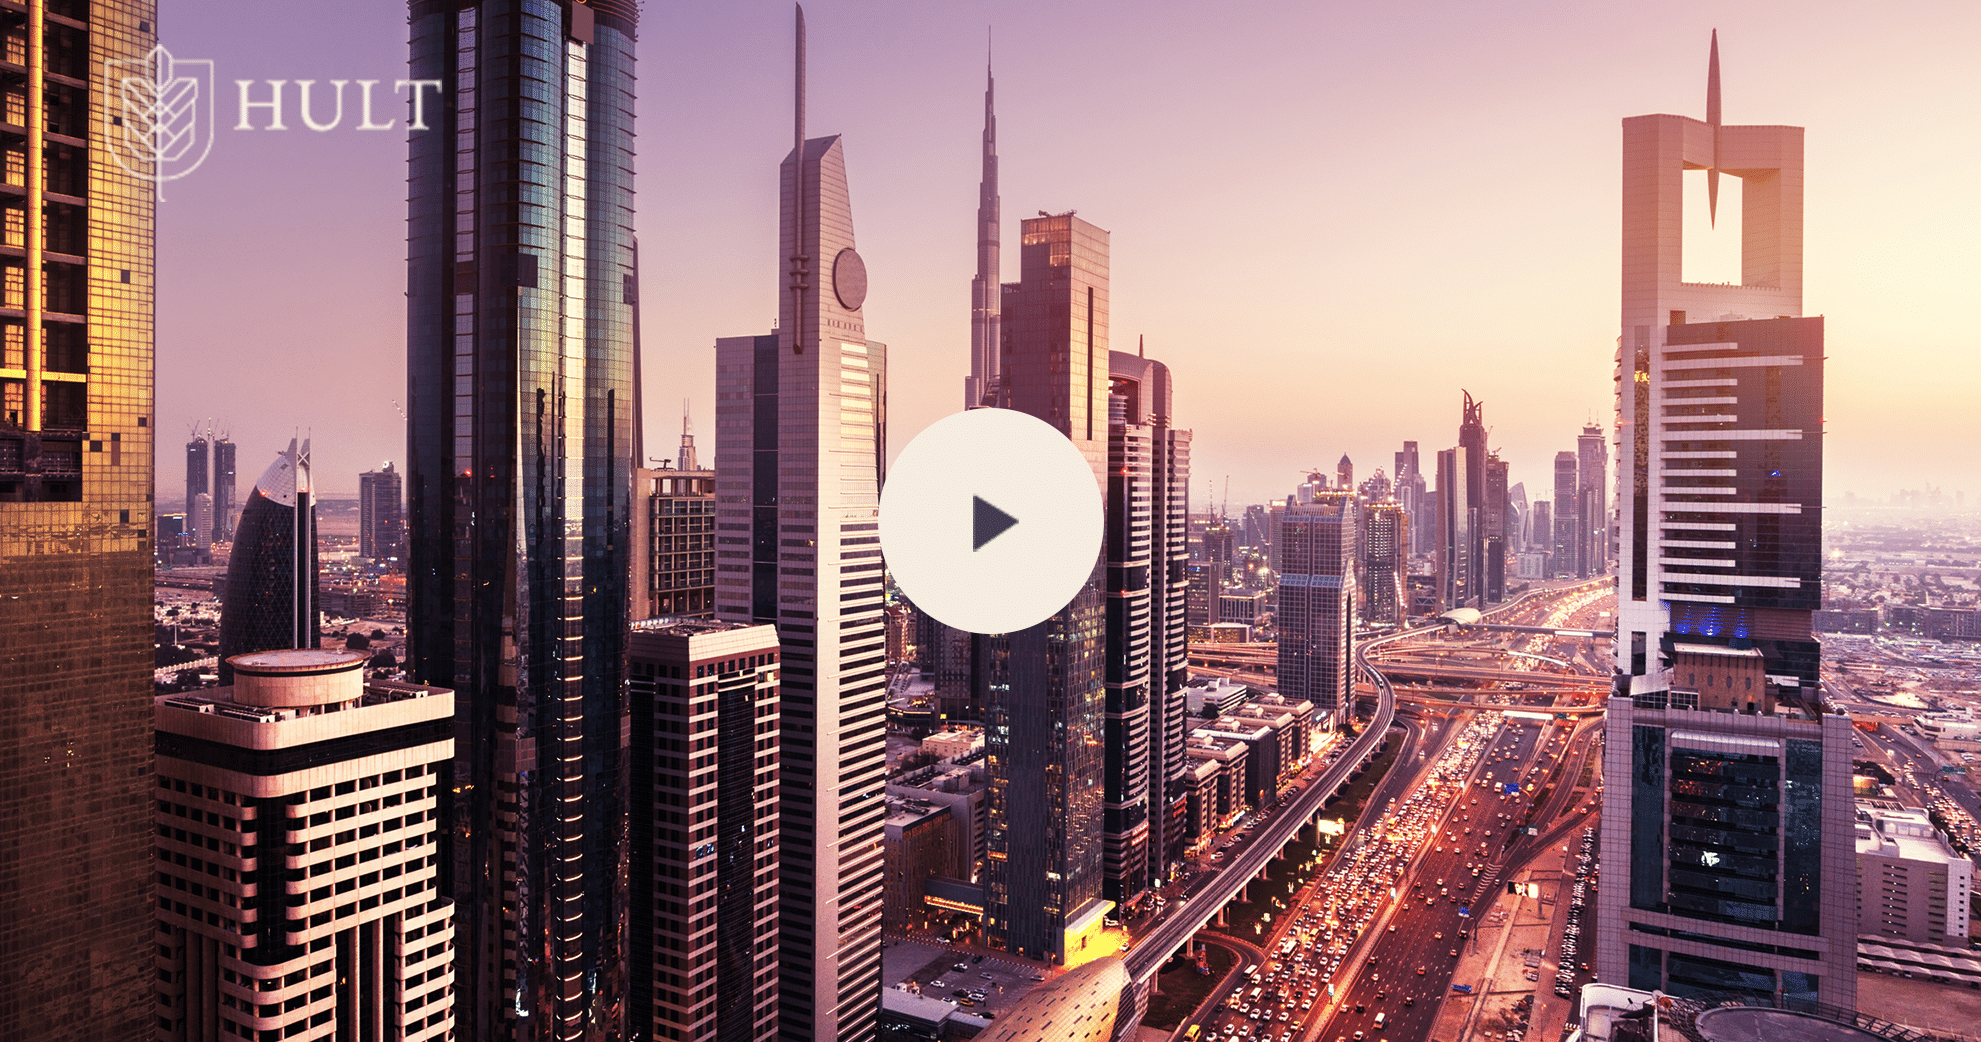 Discover Hult life in Dubai